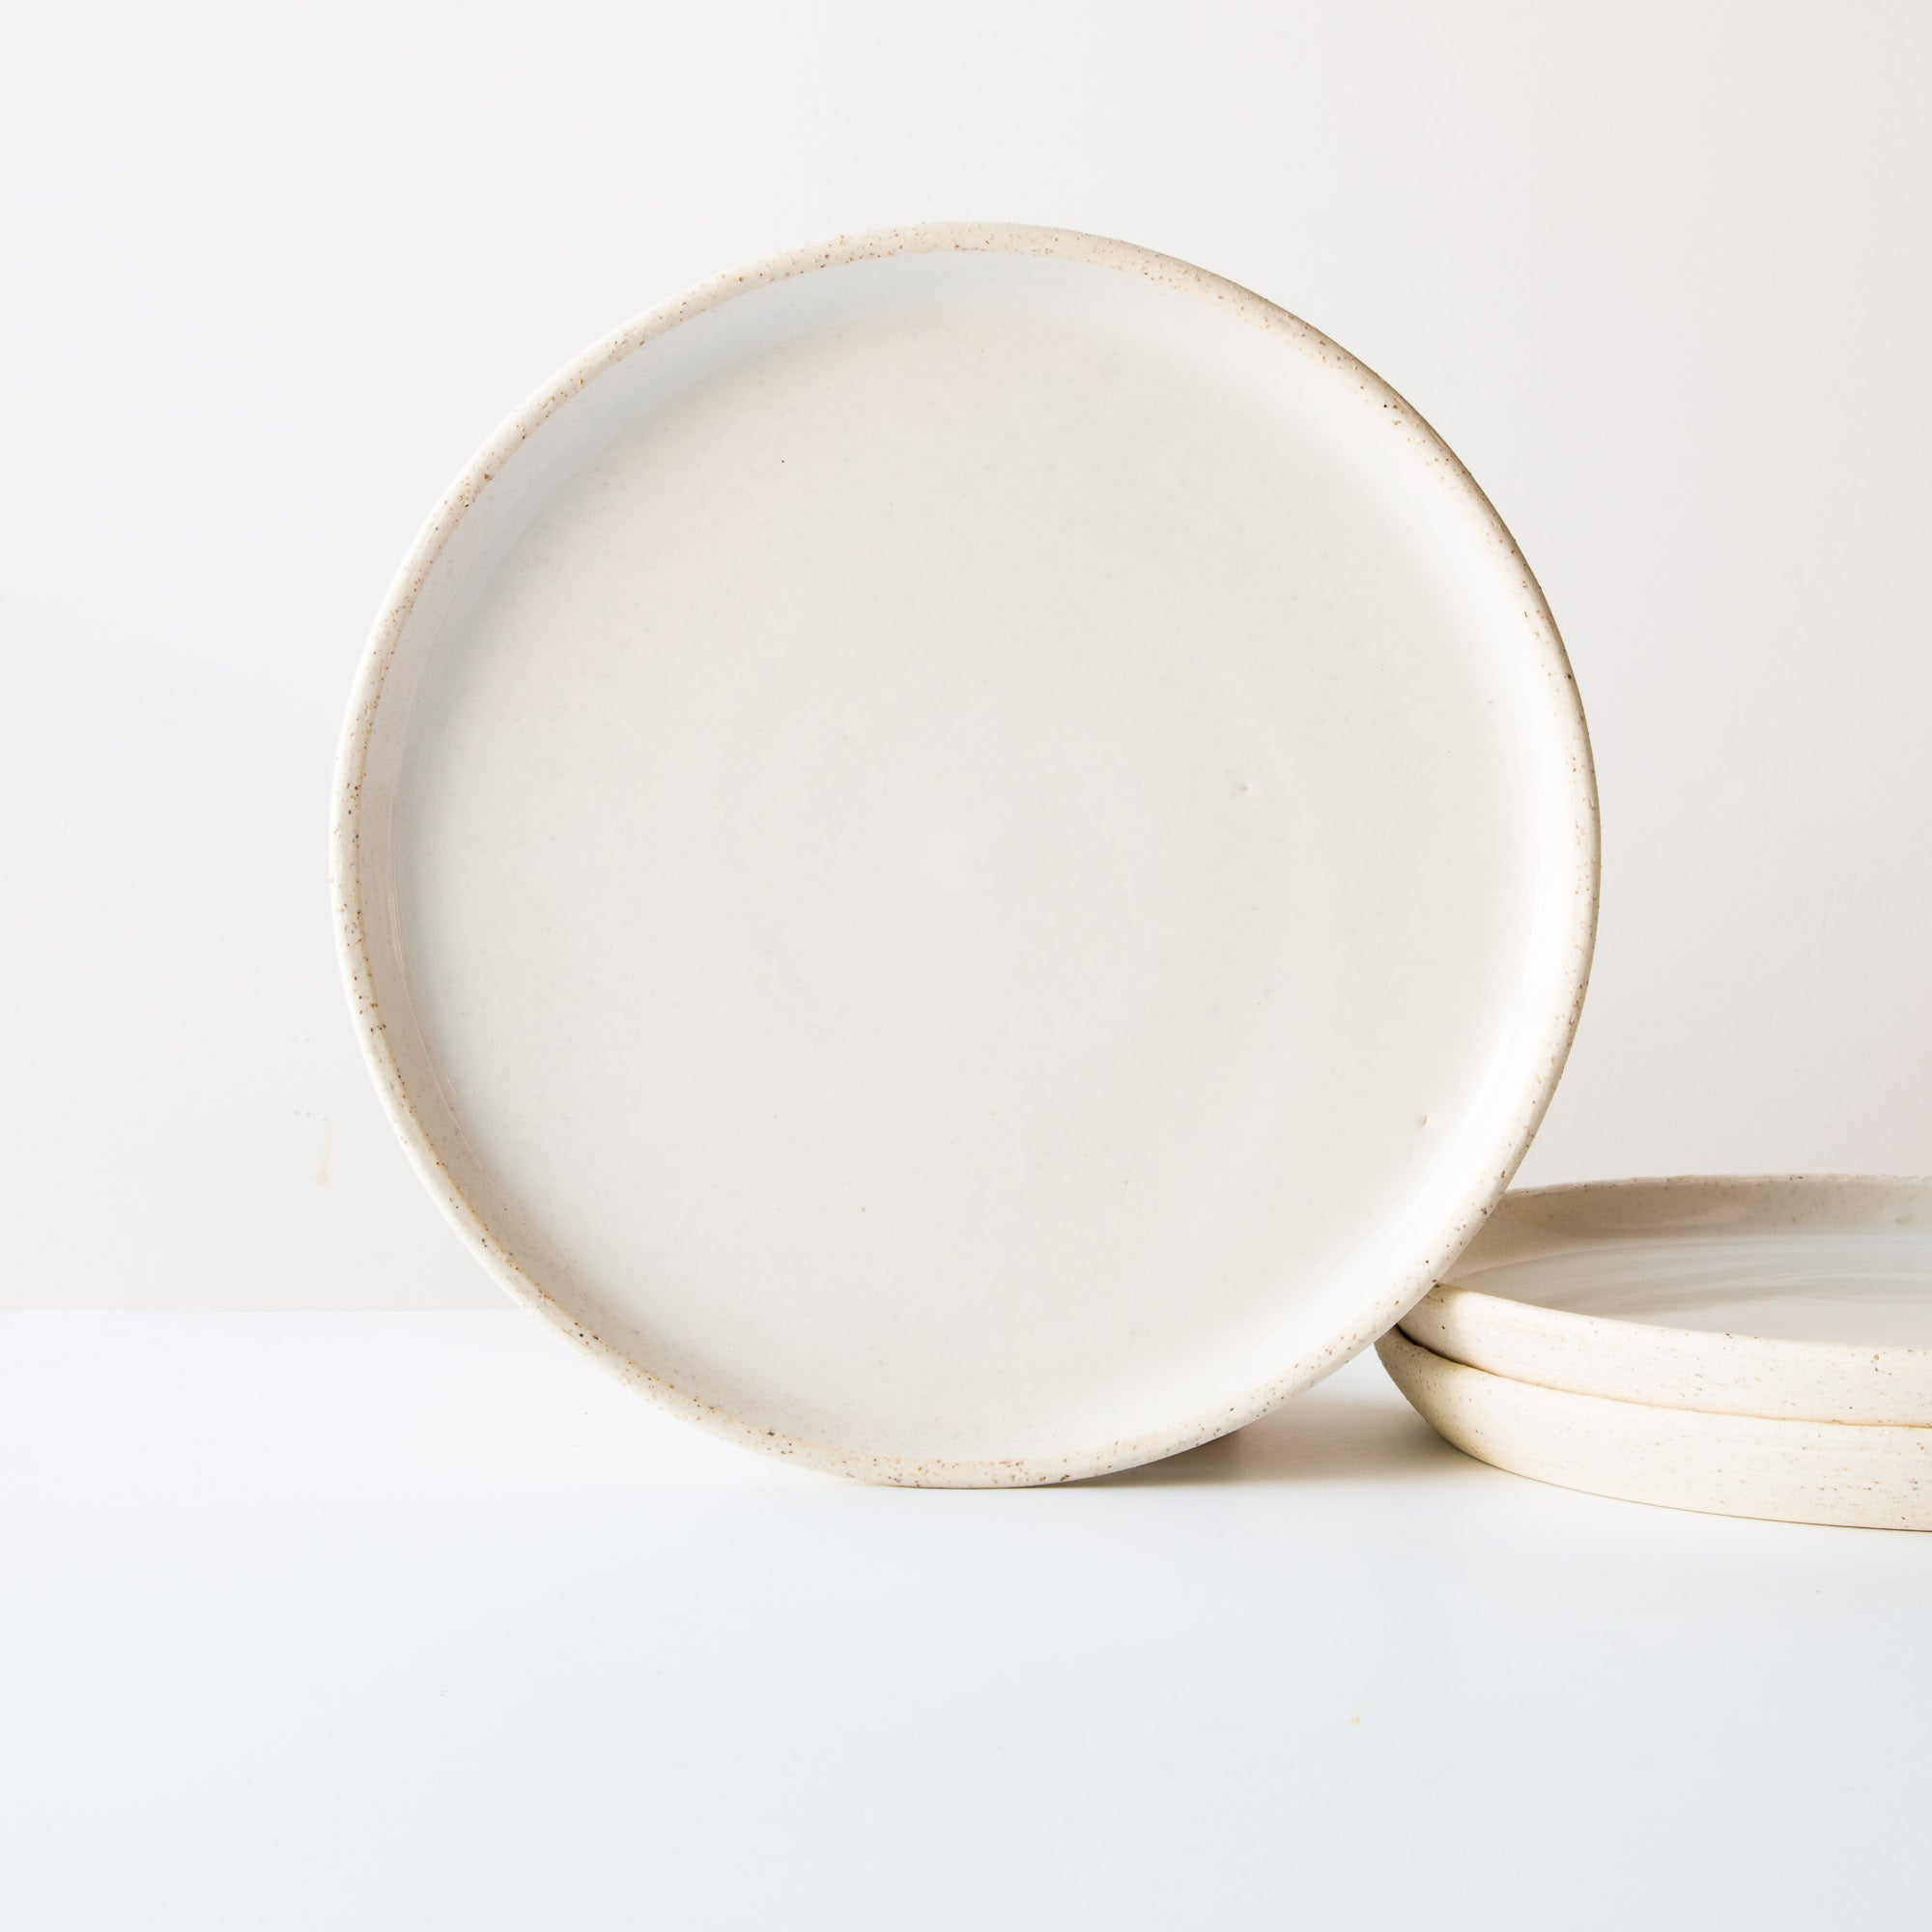 Oatmeal Clay - Soft White Glaze - Large Ceramic Dinner Plates - Handmade in Quebec ... & Large Ceramic Dinner Plate - Handmade Pottery Dinnerware - Chic u0026 Basta